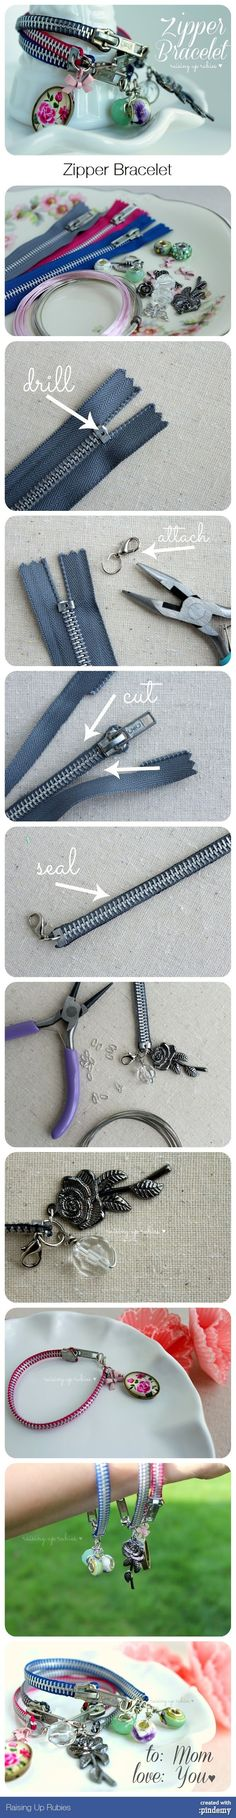 a zipper bracelet tutorial . Zipper Bracelet, Zipper Jewelry, Fabric Jewelry, Beaded Jewelry, Jewelry Bracelets, Bracelet Making, Jewelry Making, Zipper Crafts, Homemade Jewelry